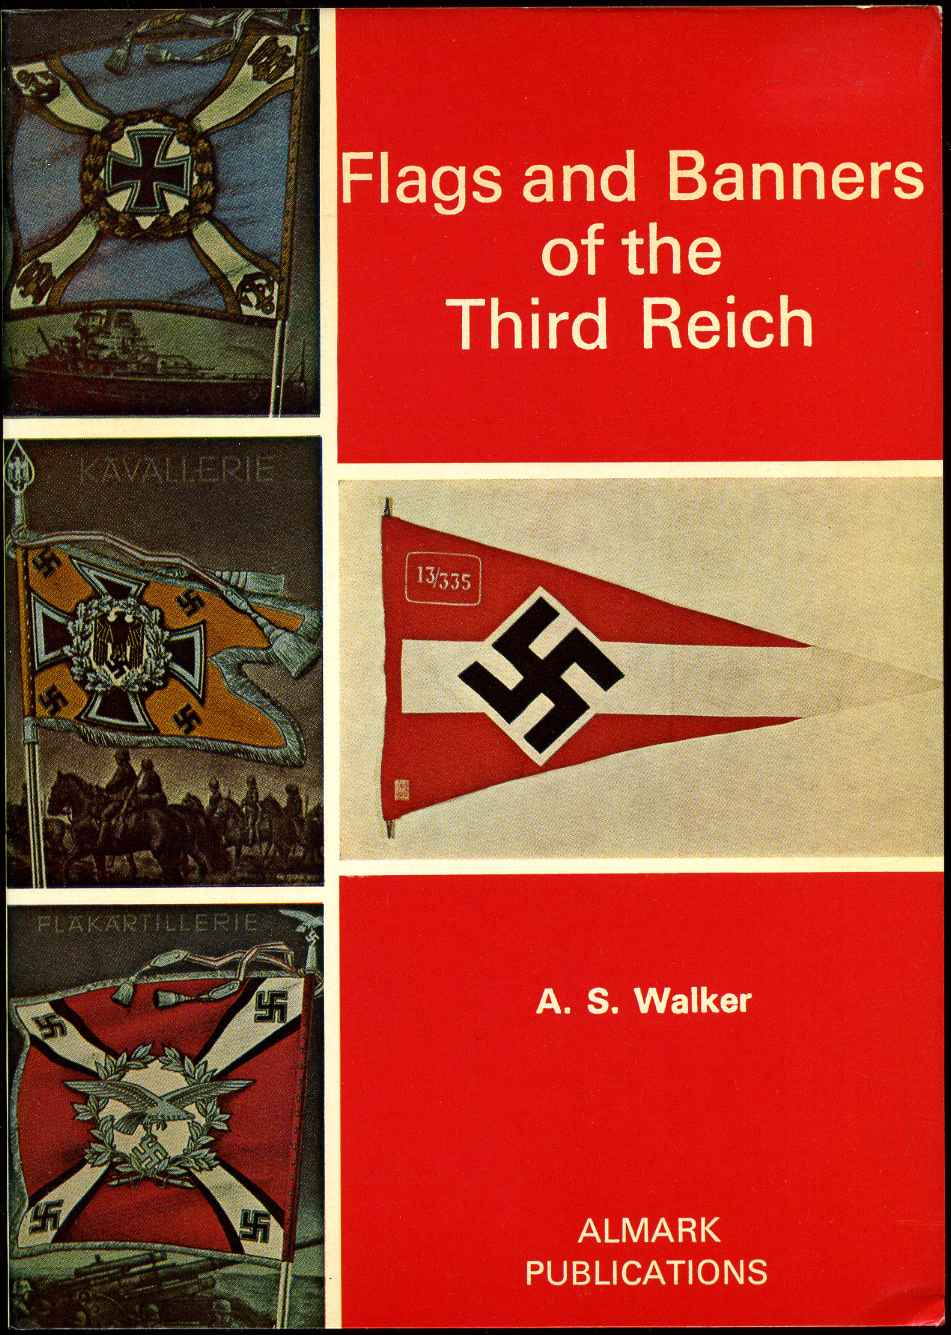 Flags and Banners of the Third Reich by Andrew S  Walker, Ron G  Hickox, C   Farlowe on Kurt Gippert Bookseller